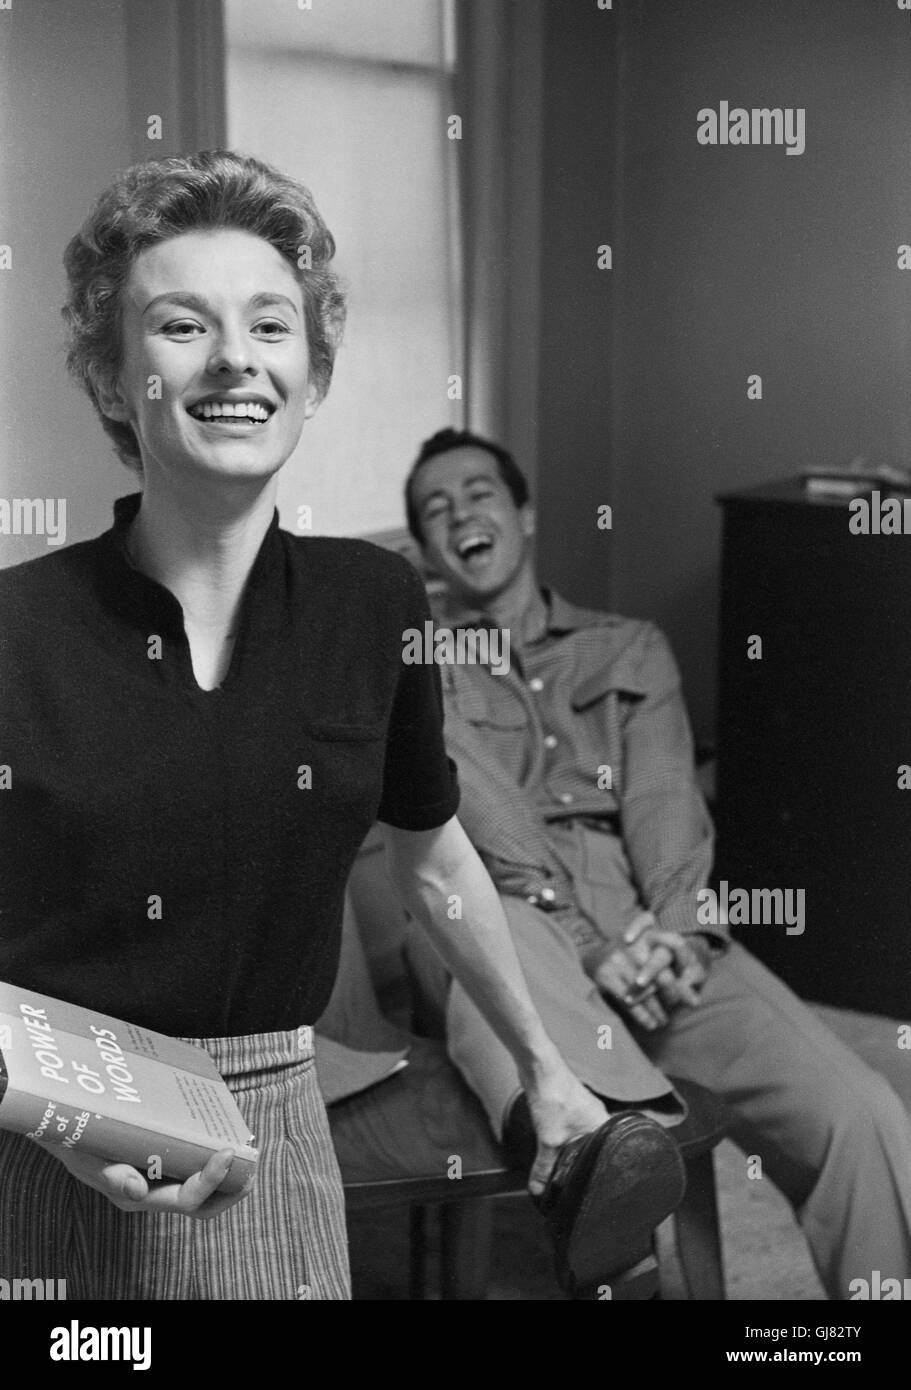 Cloris Leachman and George Englund, photographed in their New York City apartment, 1954 - Stock Image